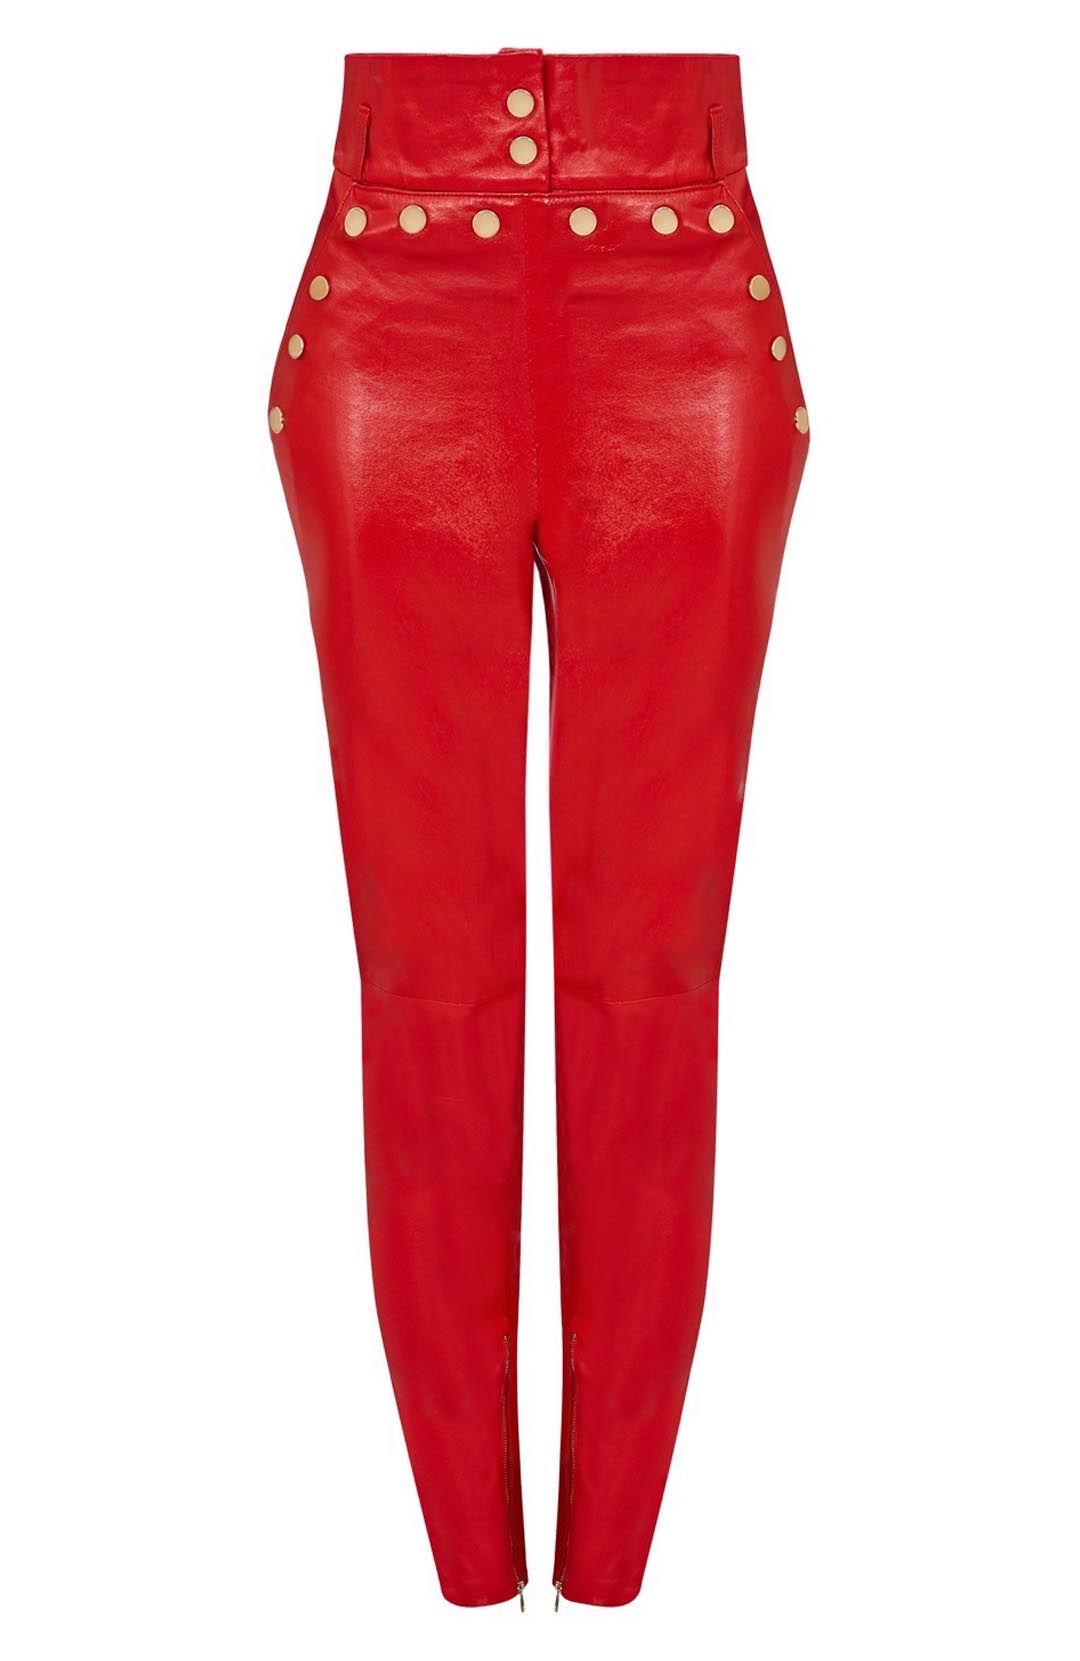 patent leather pants | patent leather pants womens | high waist leather pants women